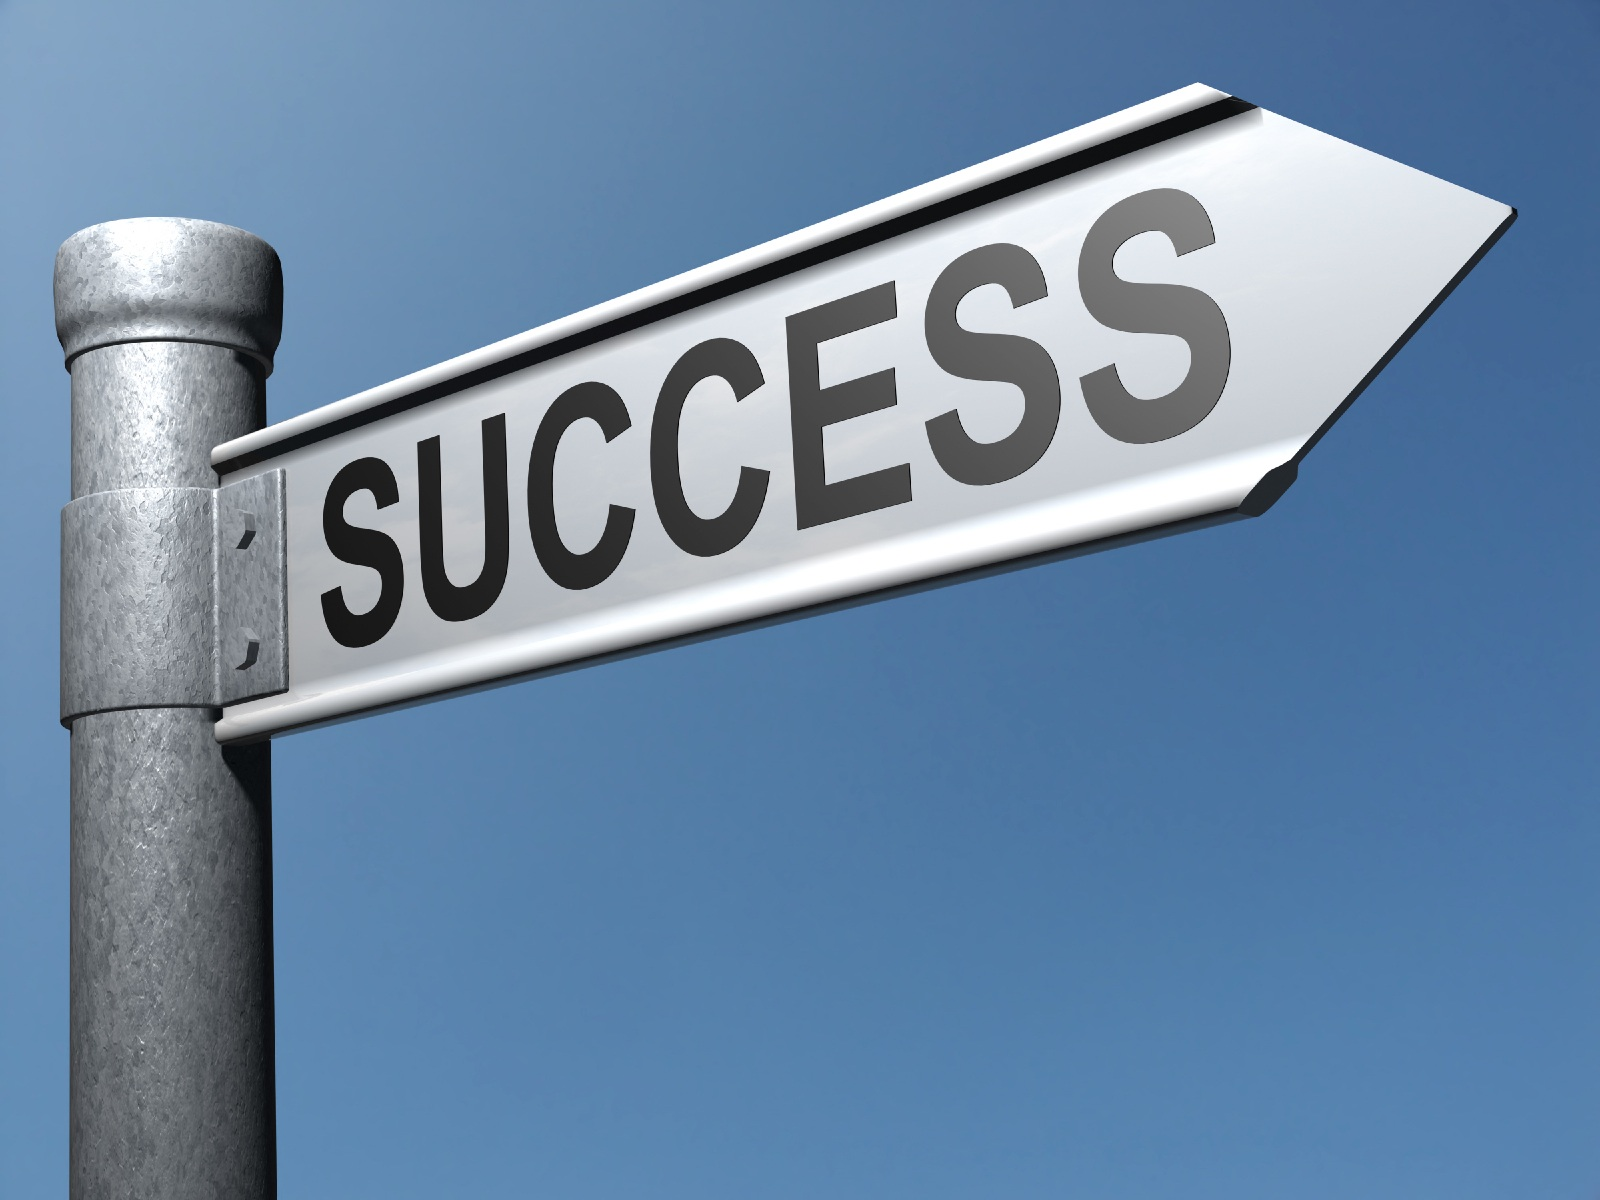 a success story Success story definition is - a story of a person who rises to fortune, acclaim, or brilliant achievement how to use success story in a sentence a story of a person who rises to fortune, acclaim, or brilliant achievement someone or something that has achieved a goal.